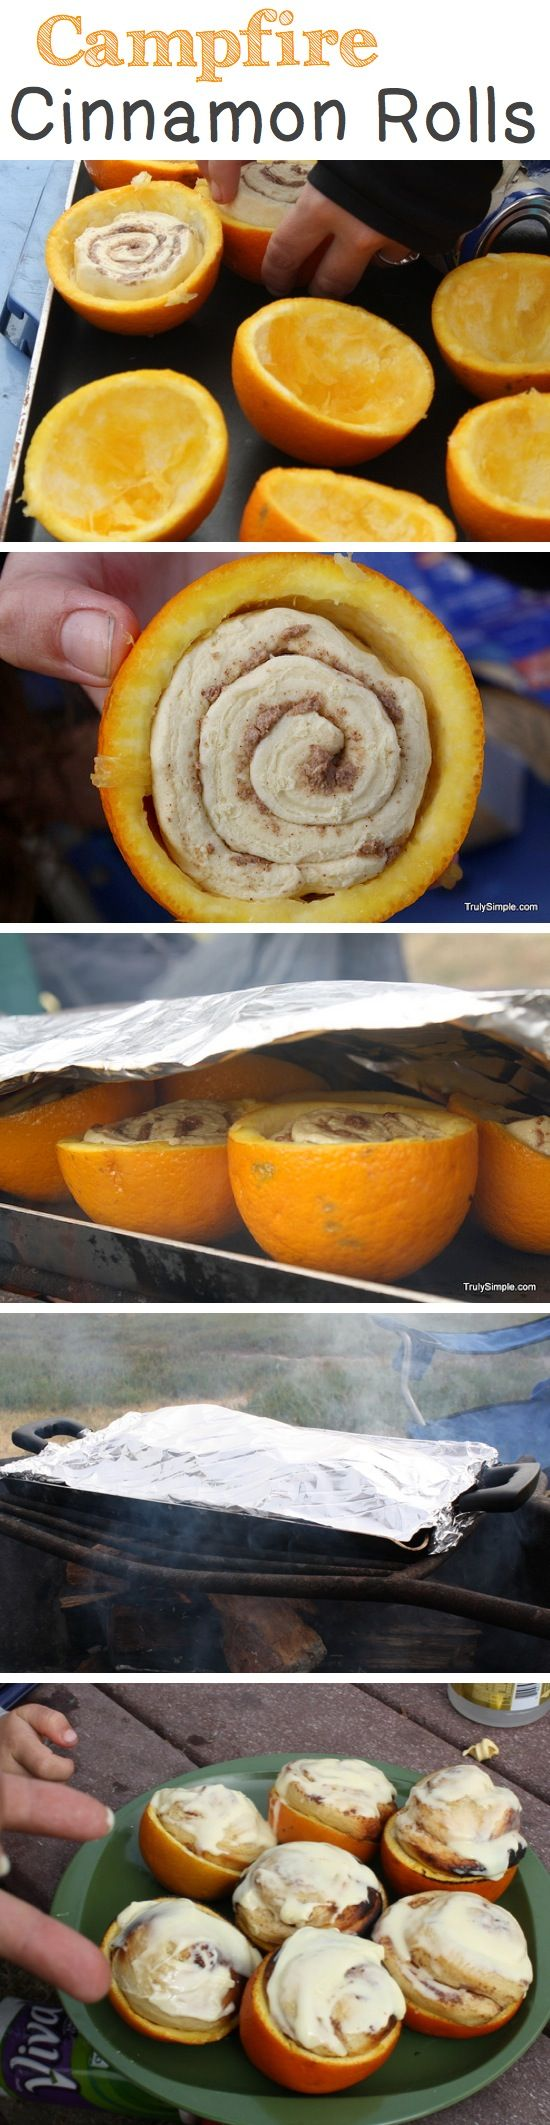 Campfire Cinnamon Rolls | Orange flavored cinnamon rolls baked over a campfire in hollowed out oranges!